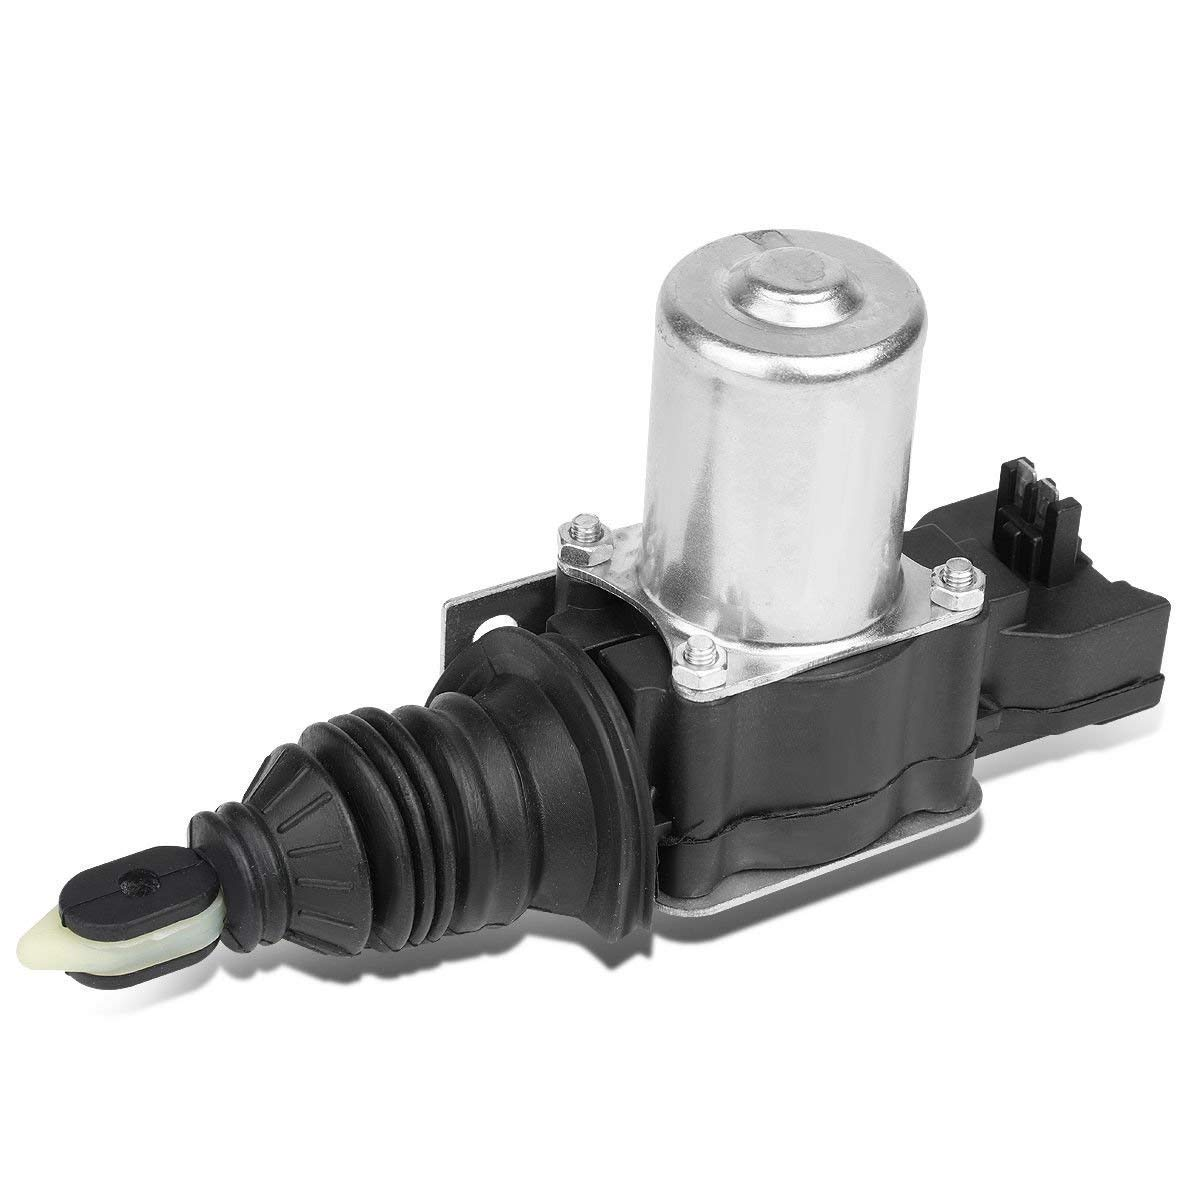 Fits Buick Cadillac Chevy GMC J8134627 Driver or Passenger Side Front or Rear- Replaces 1719362 746-014 22020256 Power Door Lock Actuator 746014 22071947 1719363 8134627 16603085 22062740